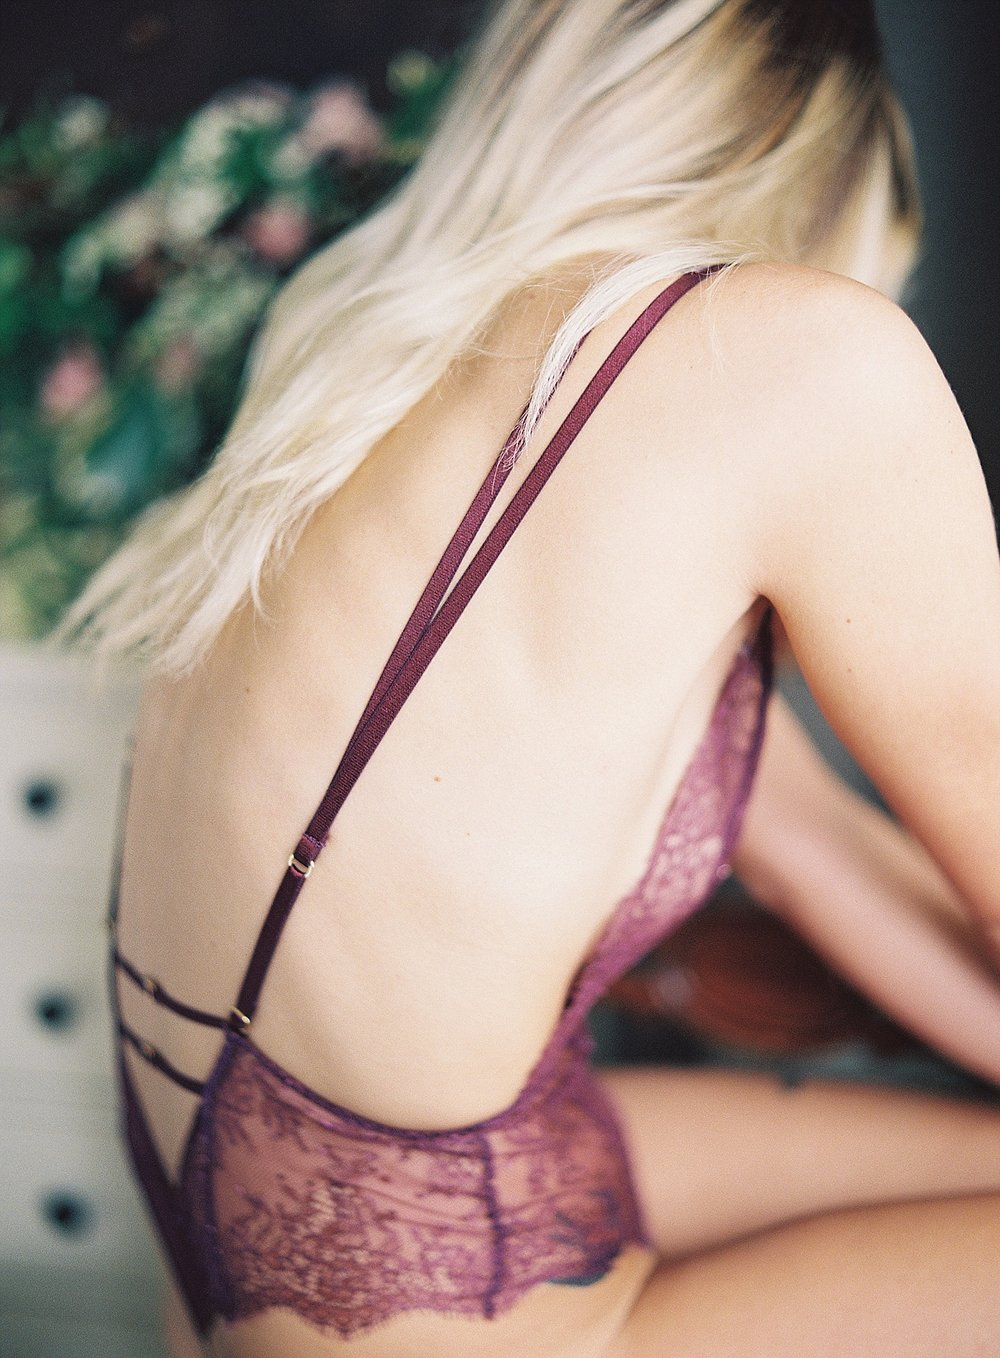 gossamer-mornings-laura-catherine-organic-boudoir-021.jpg